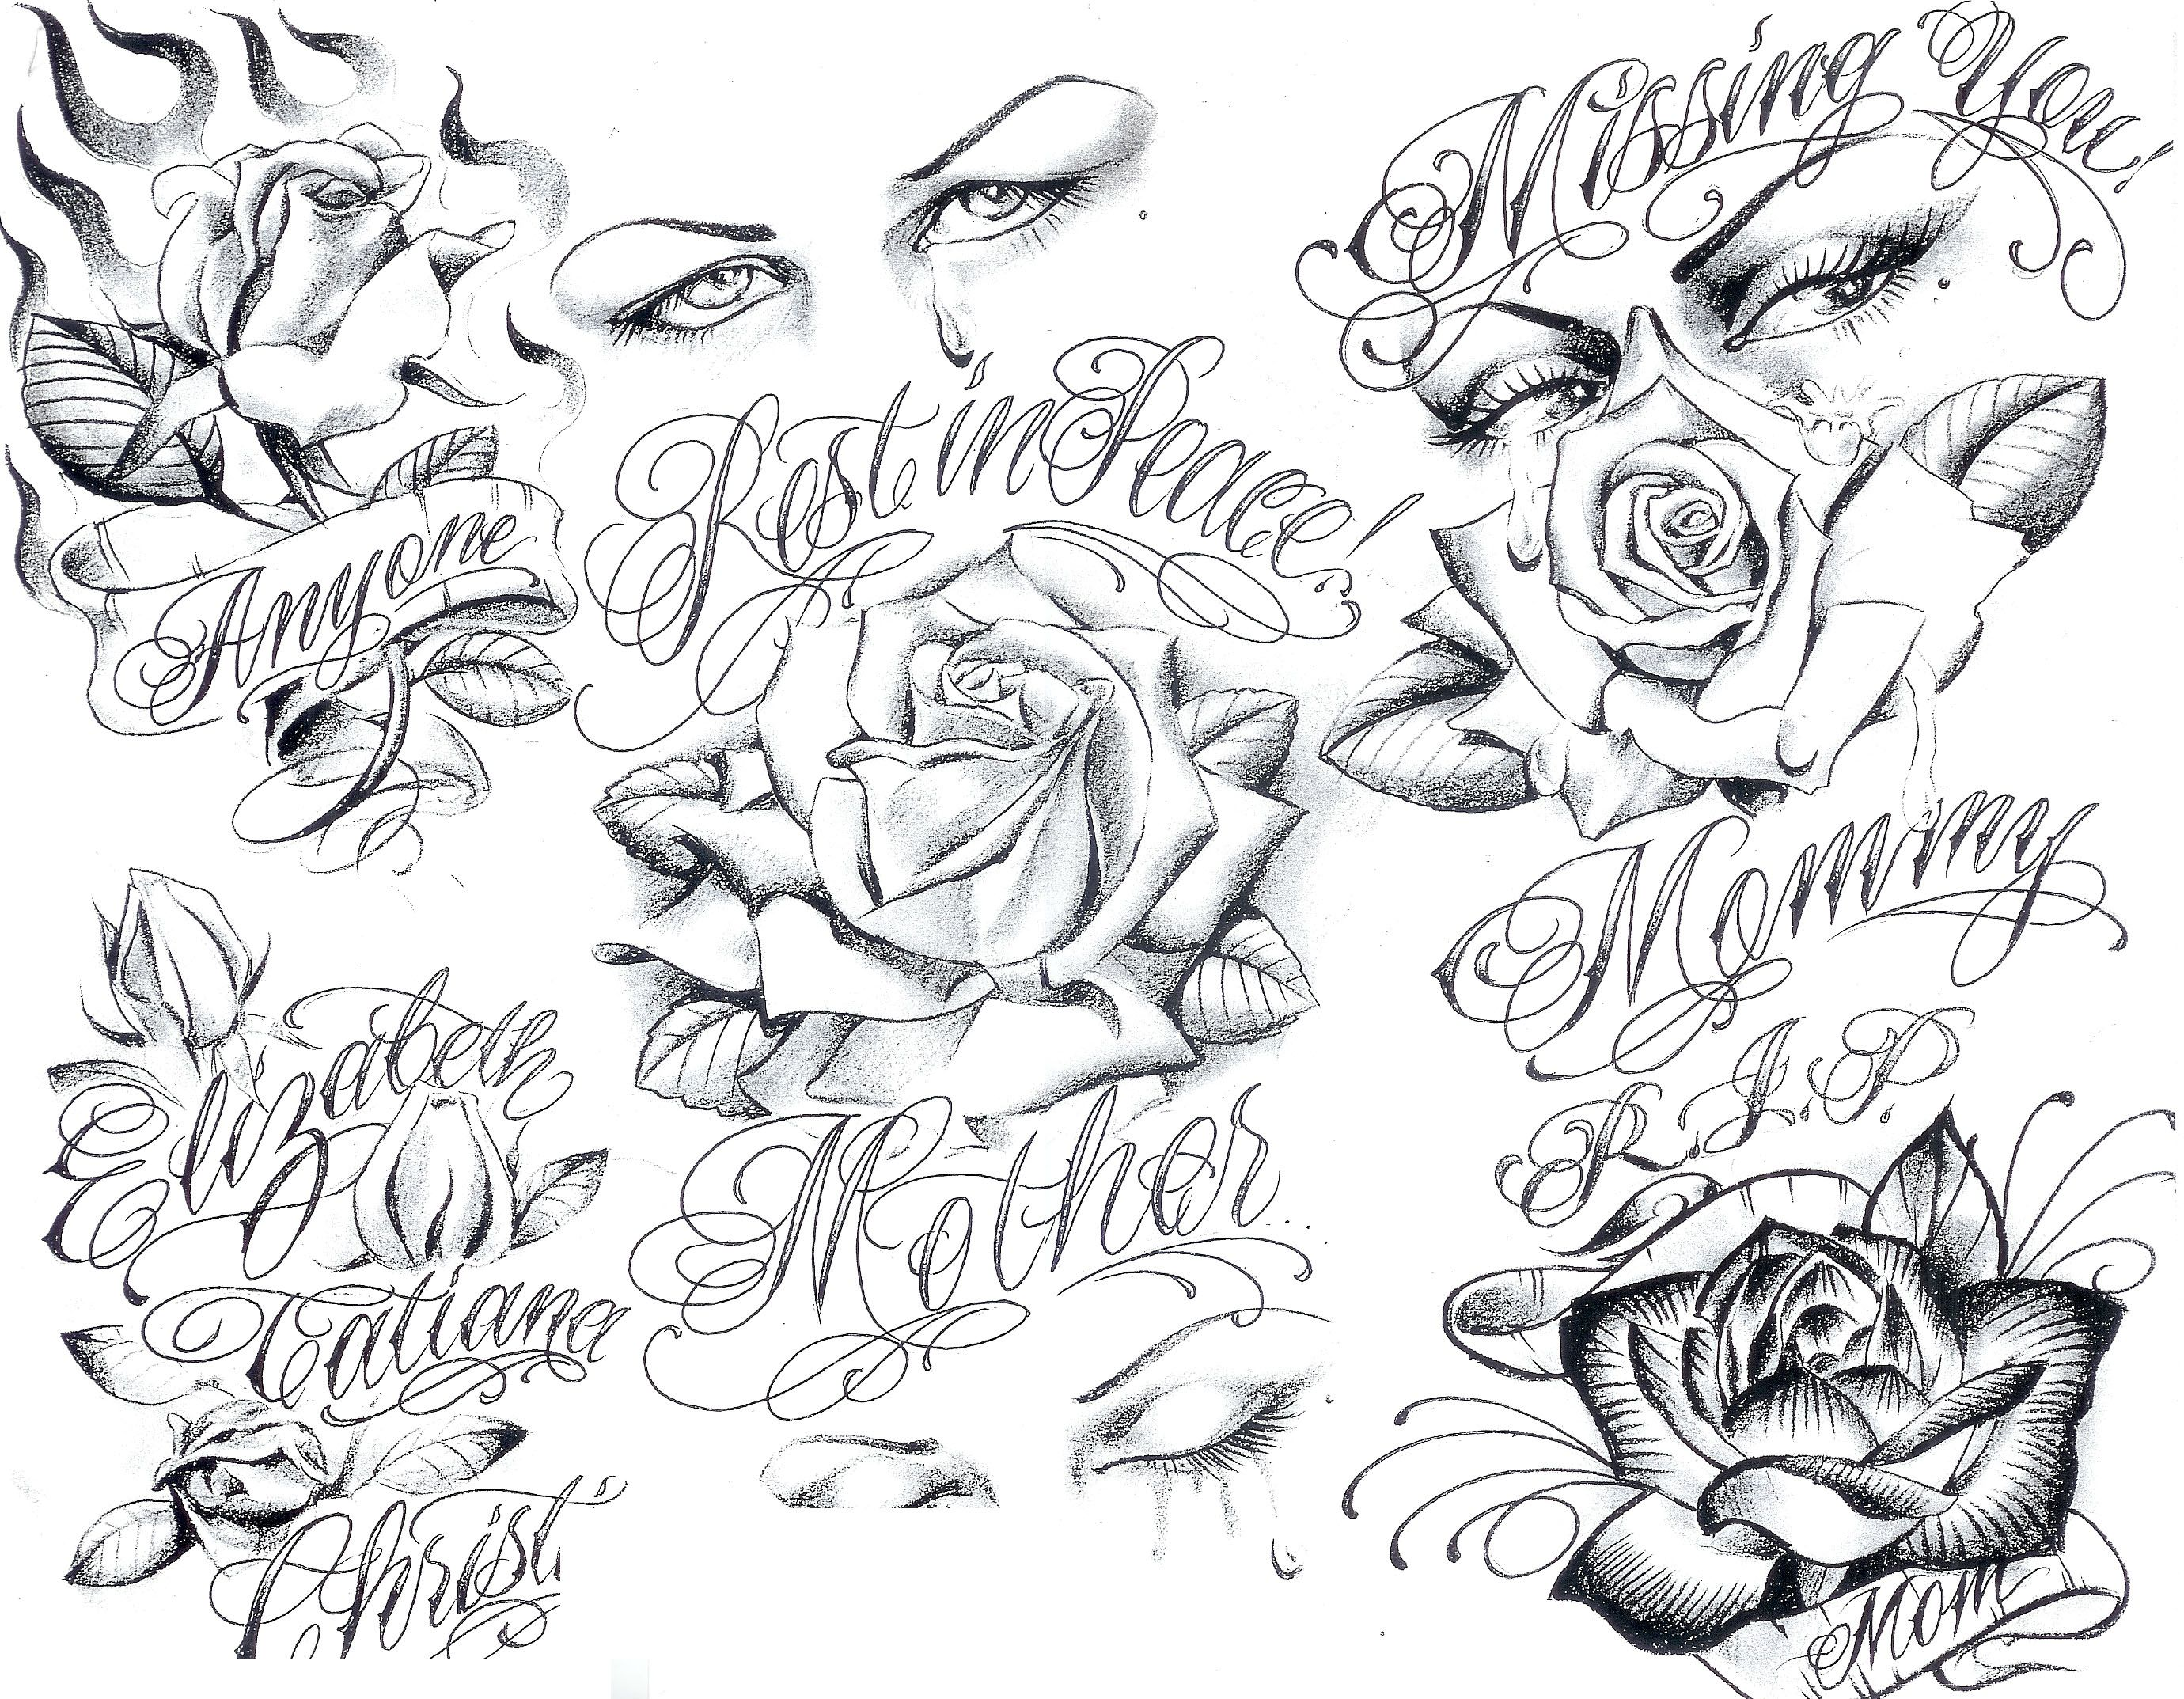 Art Gangster Tattoo Designs | Tattoo Flash by Boog. Татуировки ...